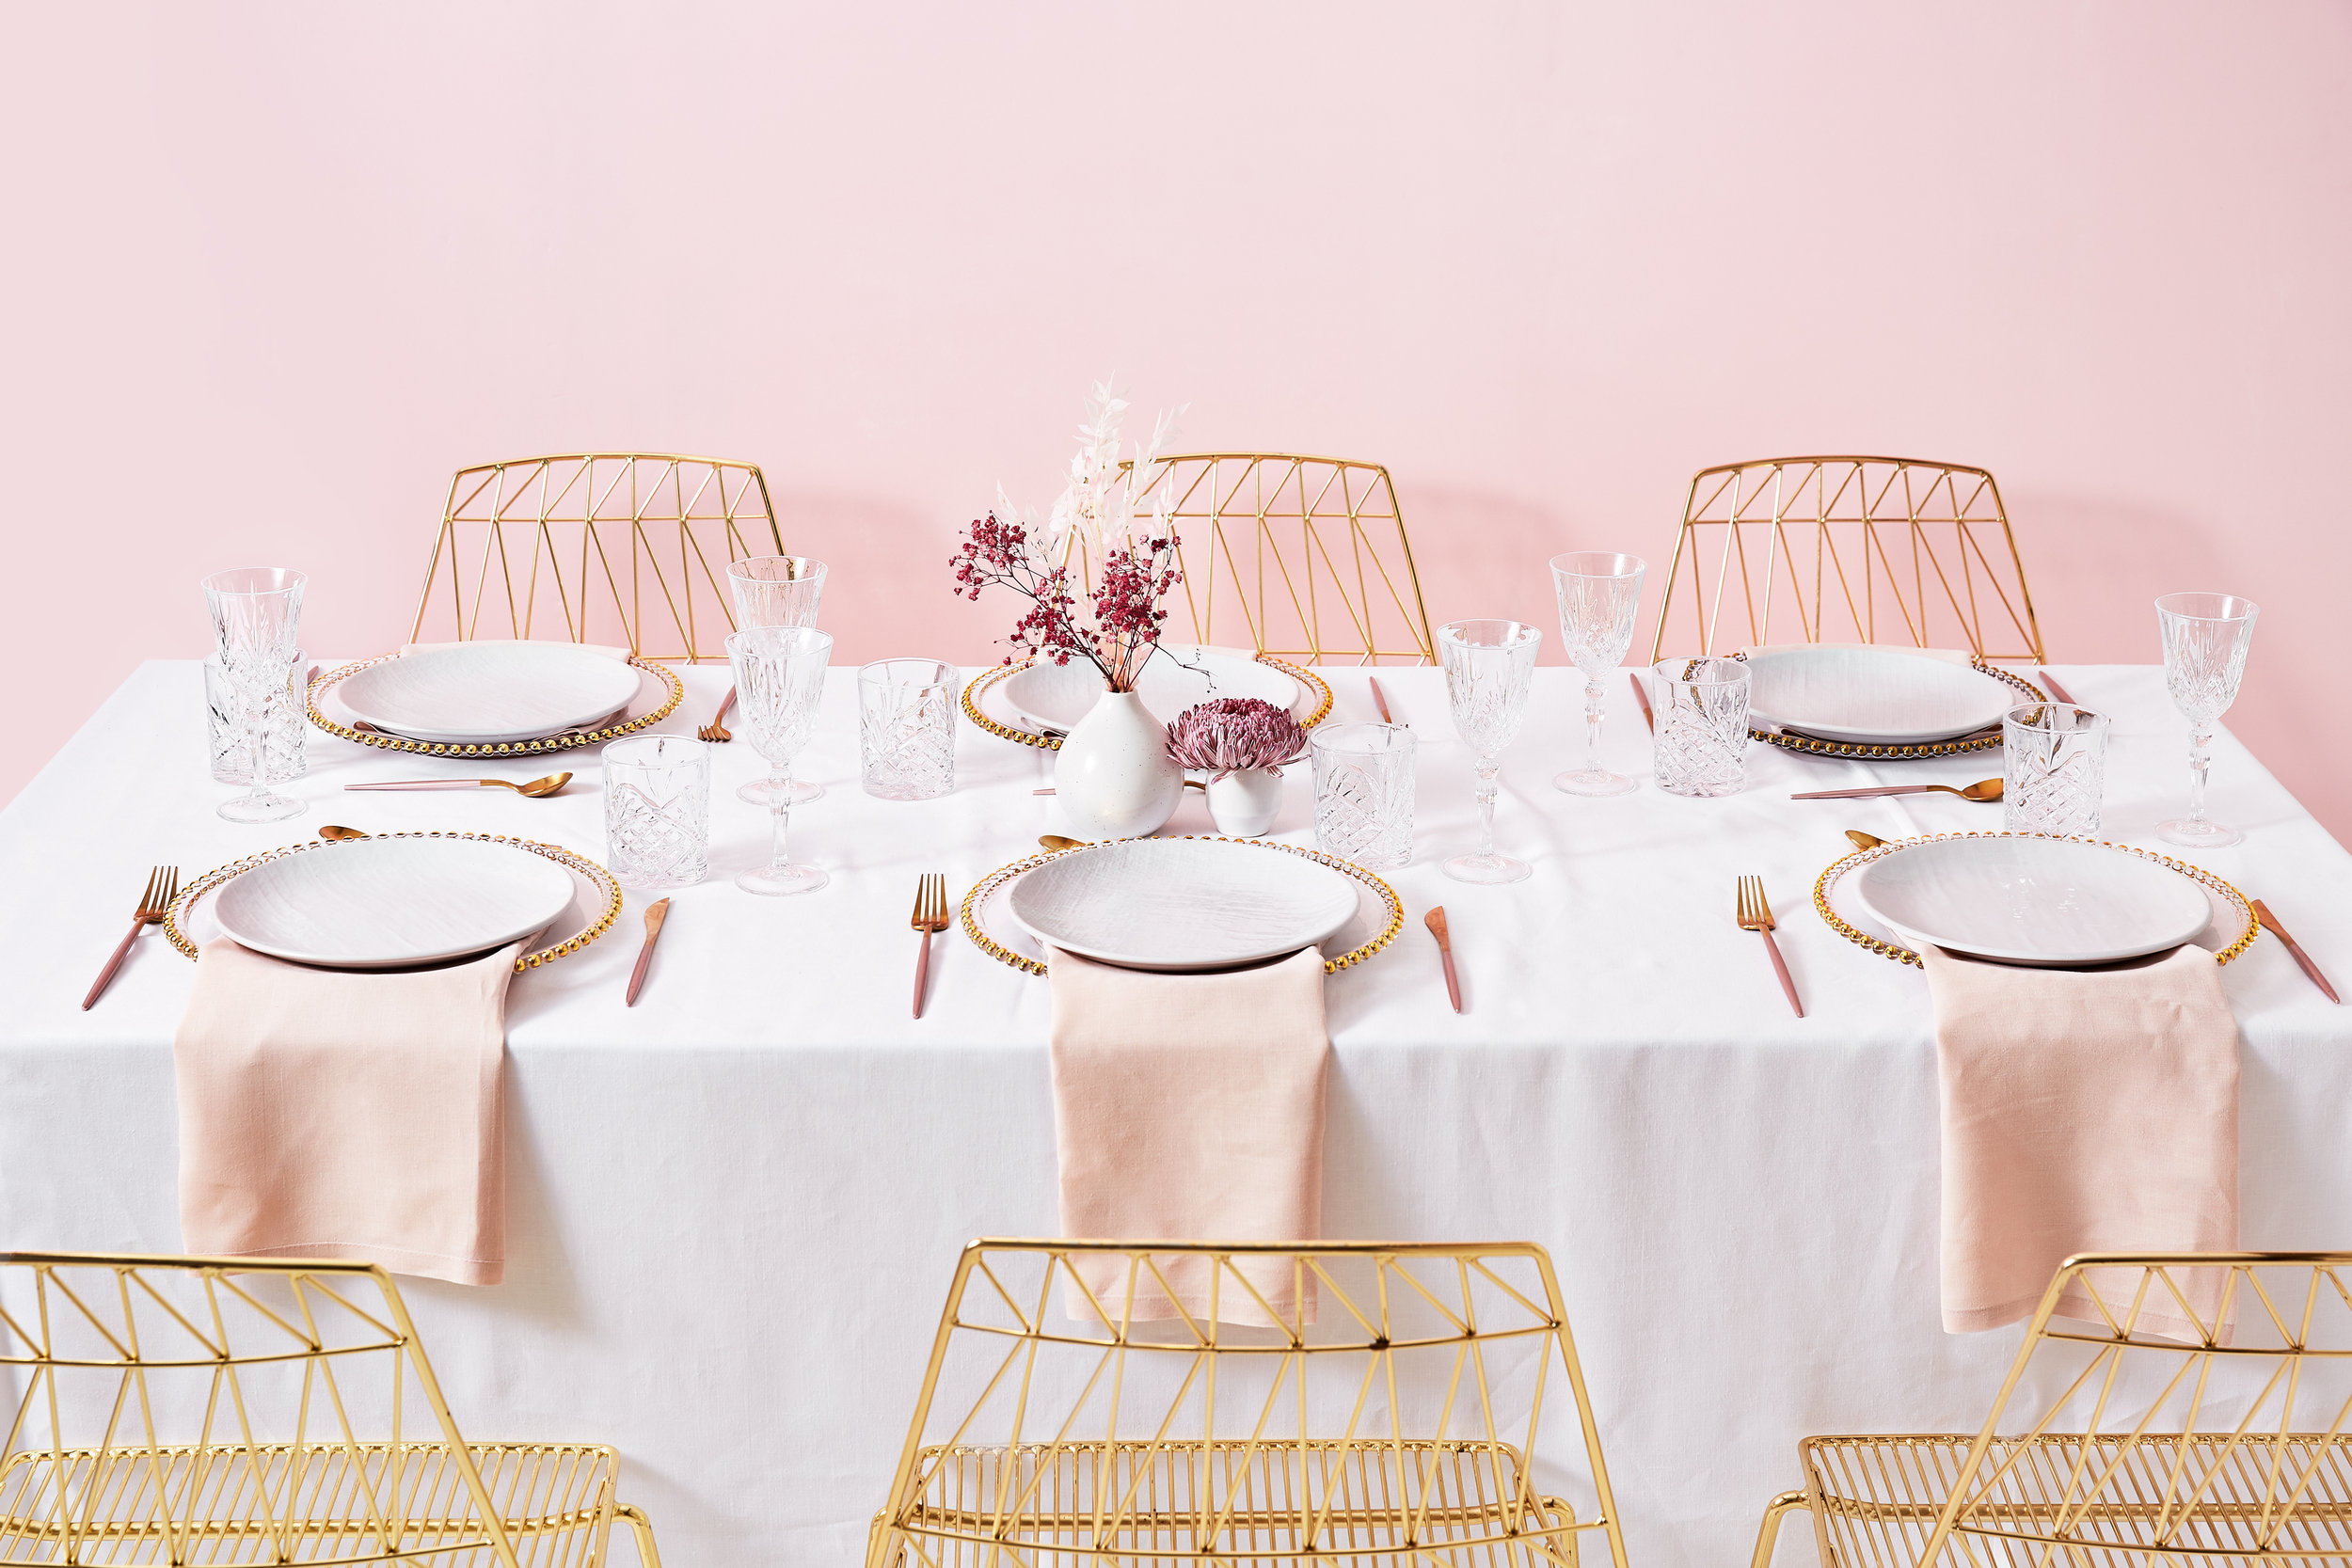 MODERN BLUSH - Playful yet elegant, our debut collection captures modern trends and timeless sophistication. Perfect for wedding décor, lavish corporate events and stylish parties - this all-in-one collection will tickle you pink.